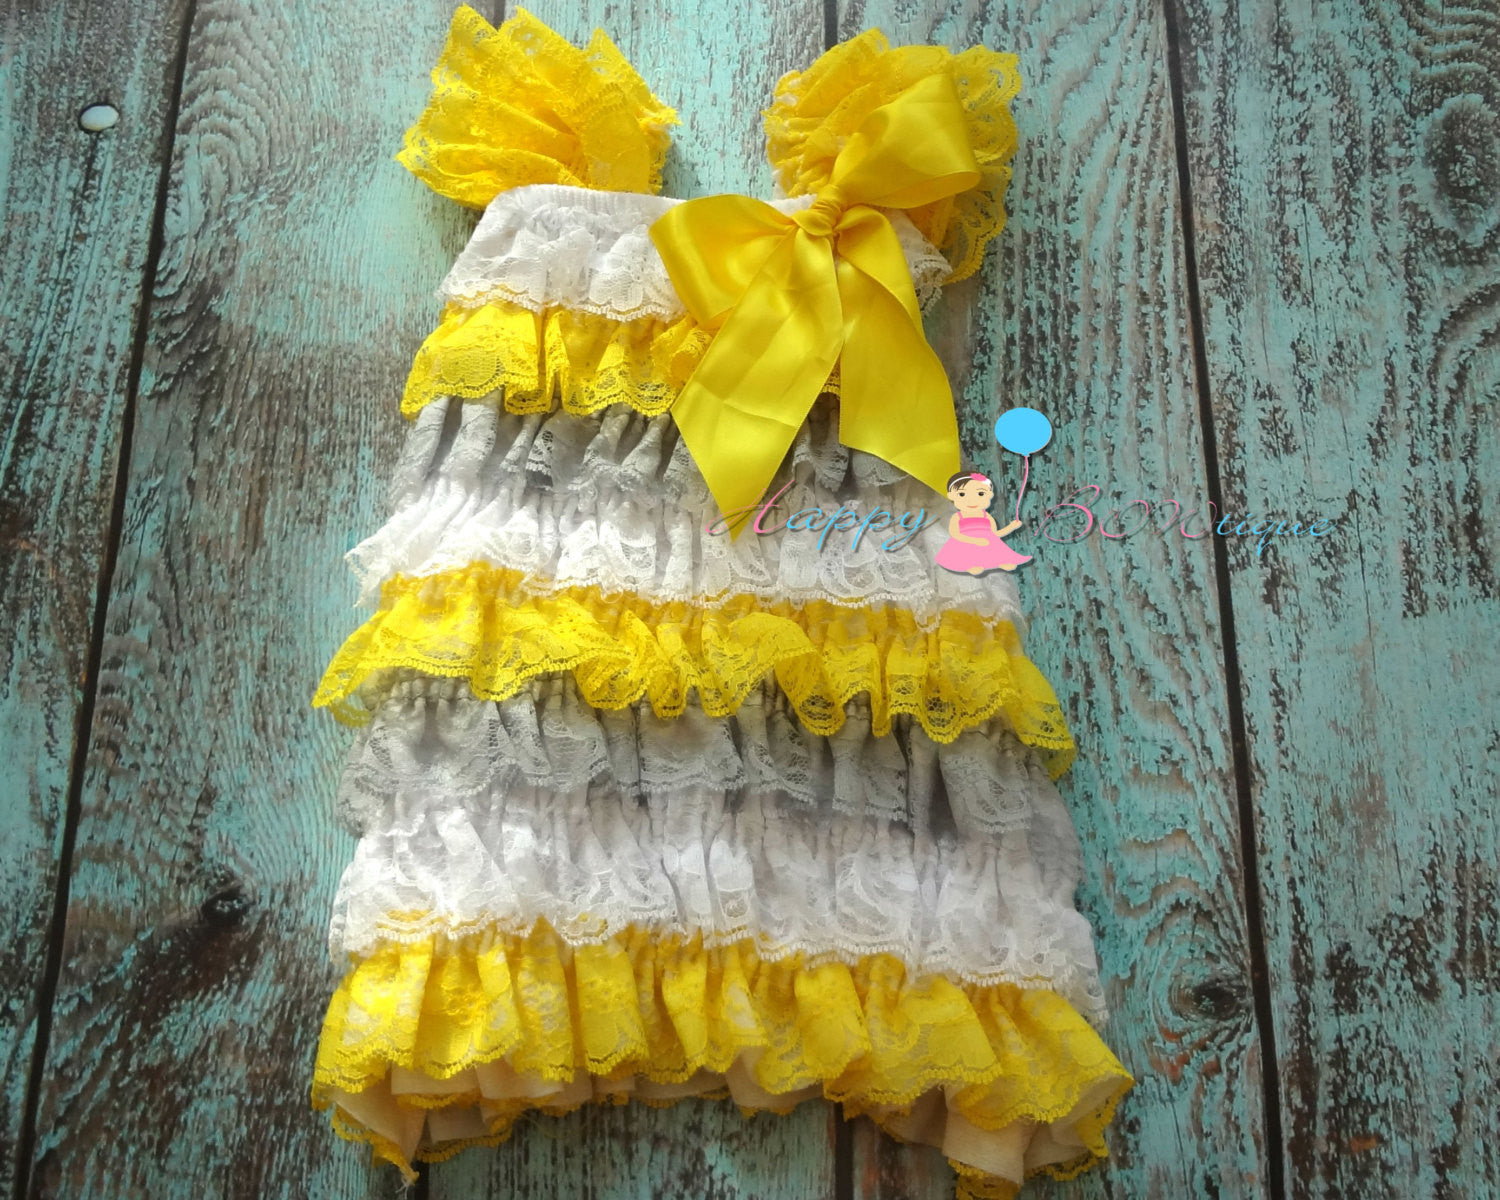 Springtime Petti Lace Dress - Happy BOWtique - children's clothing, Baby Girl clothing